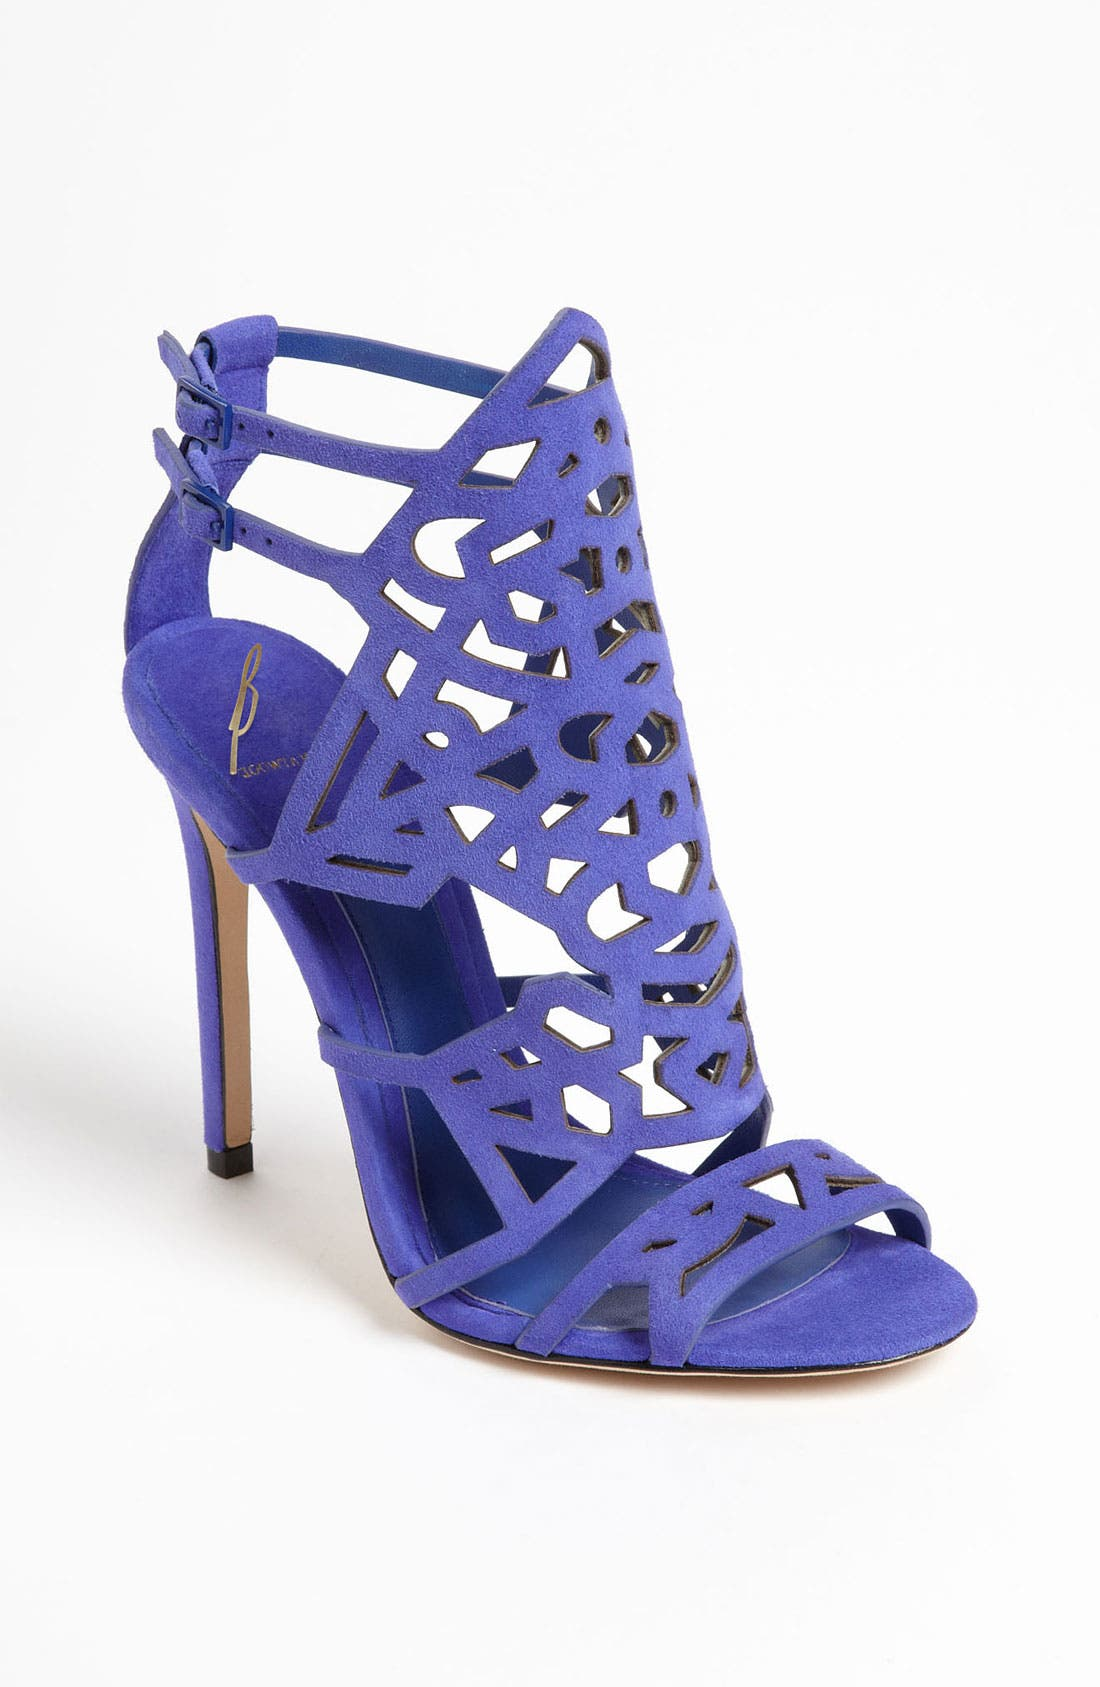 Alternate Image 1 Selected - B Brian Atwood 'Laplata' High Sandal